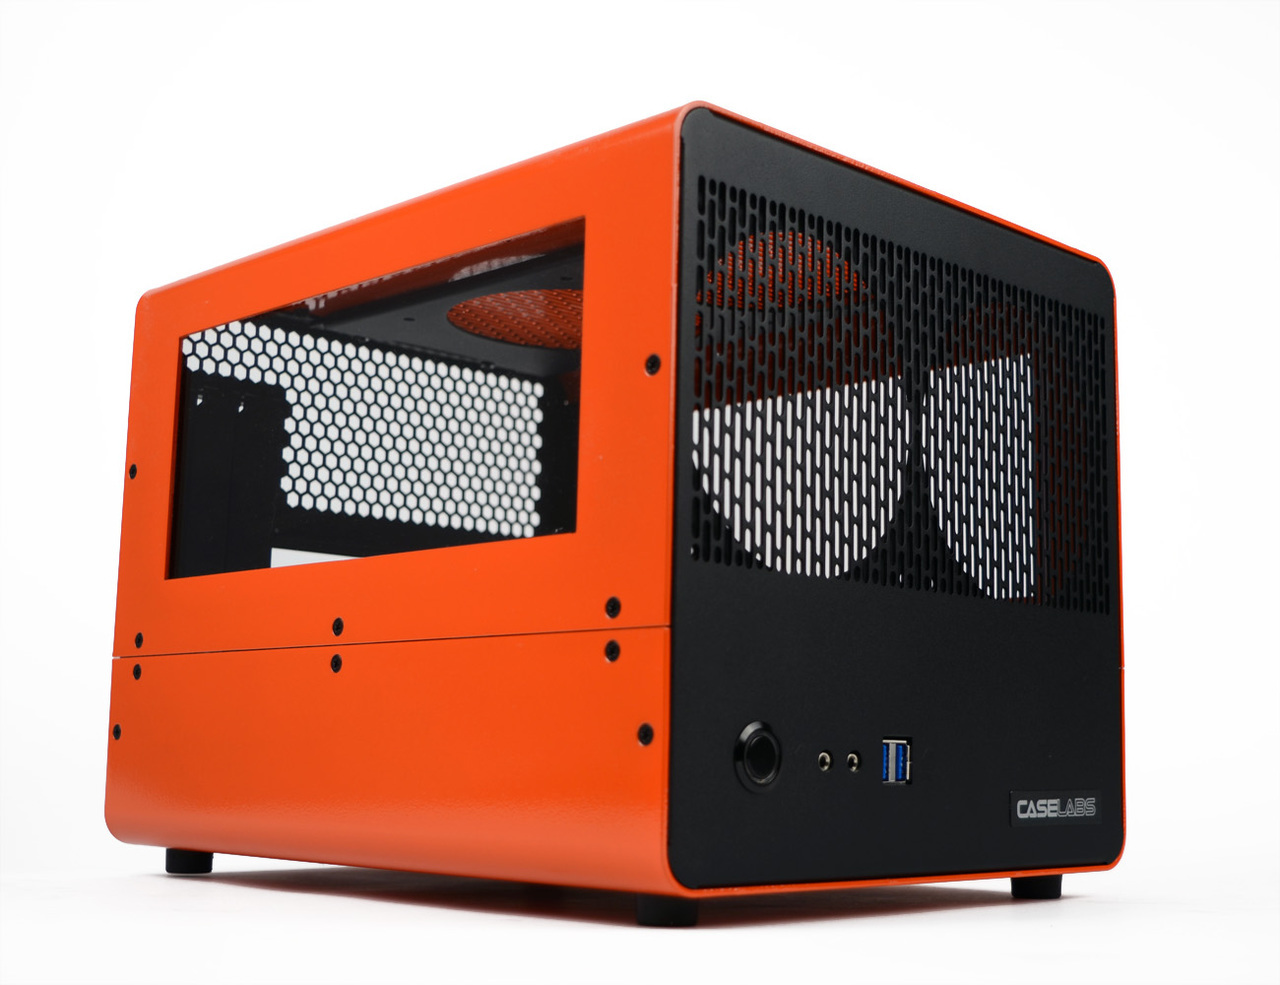 Caselabs release their new Bullet Case Line of PC cases